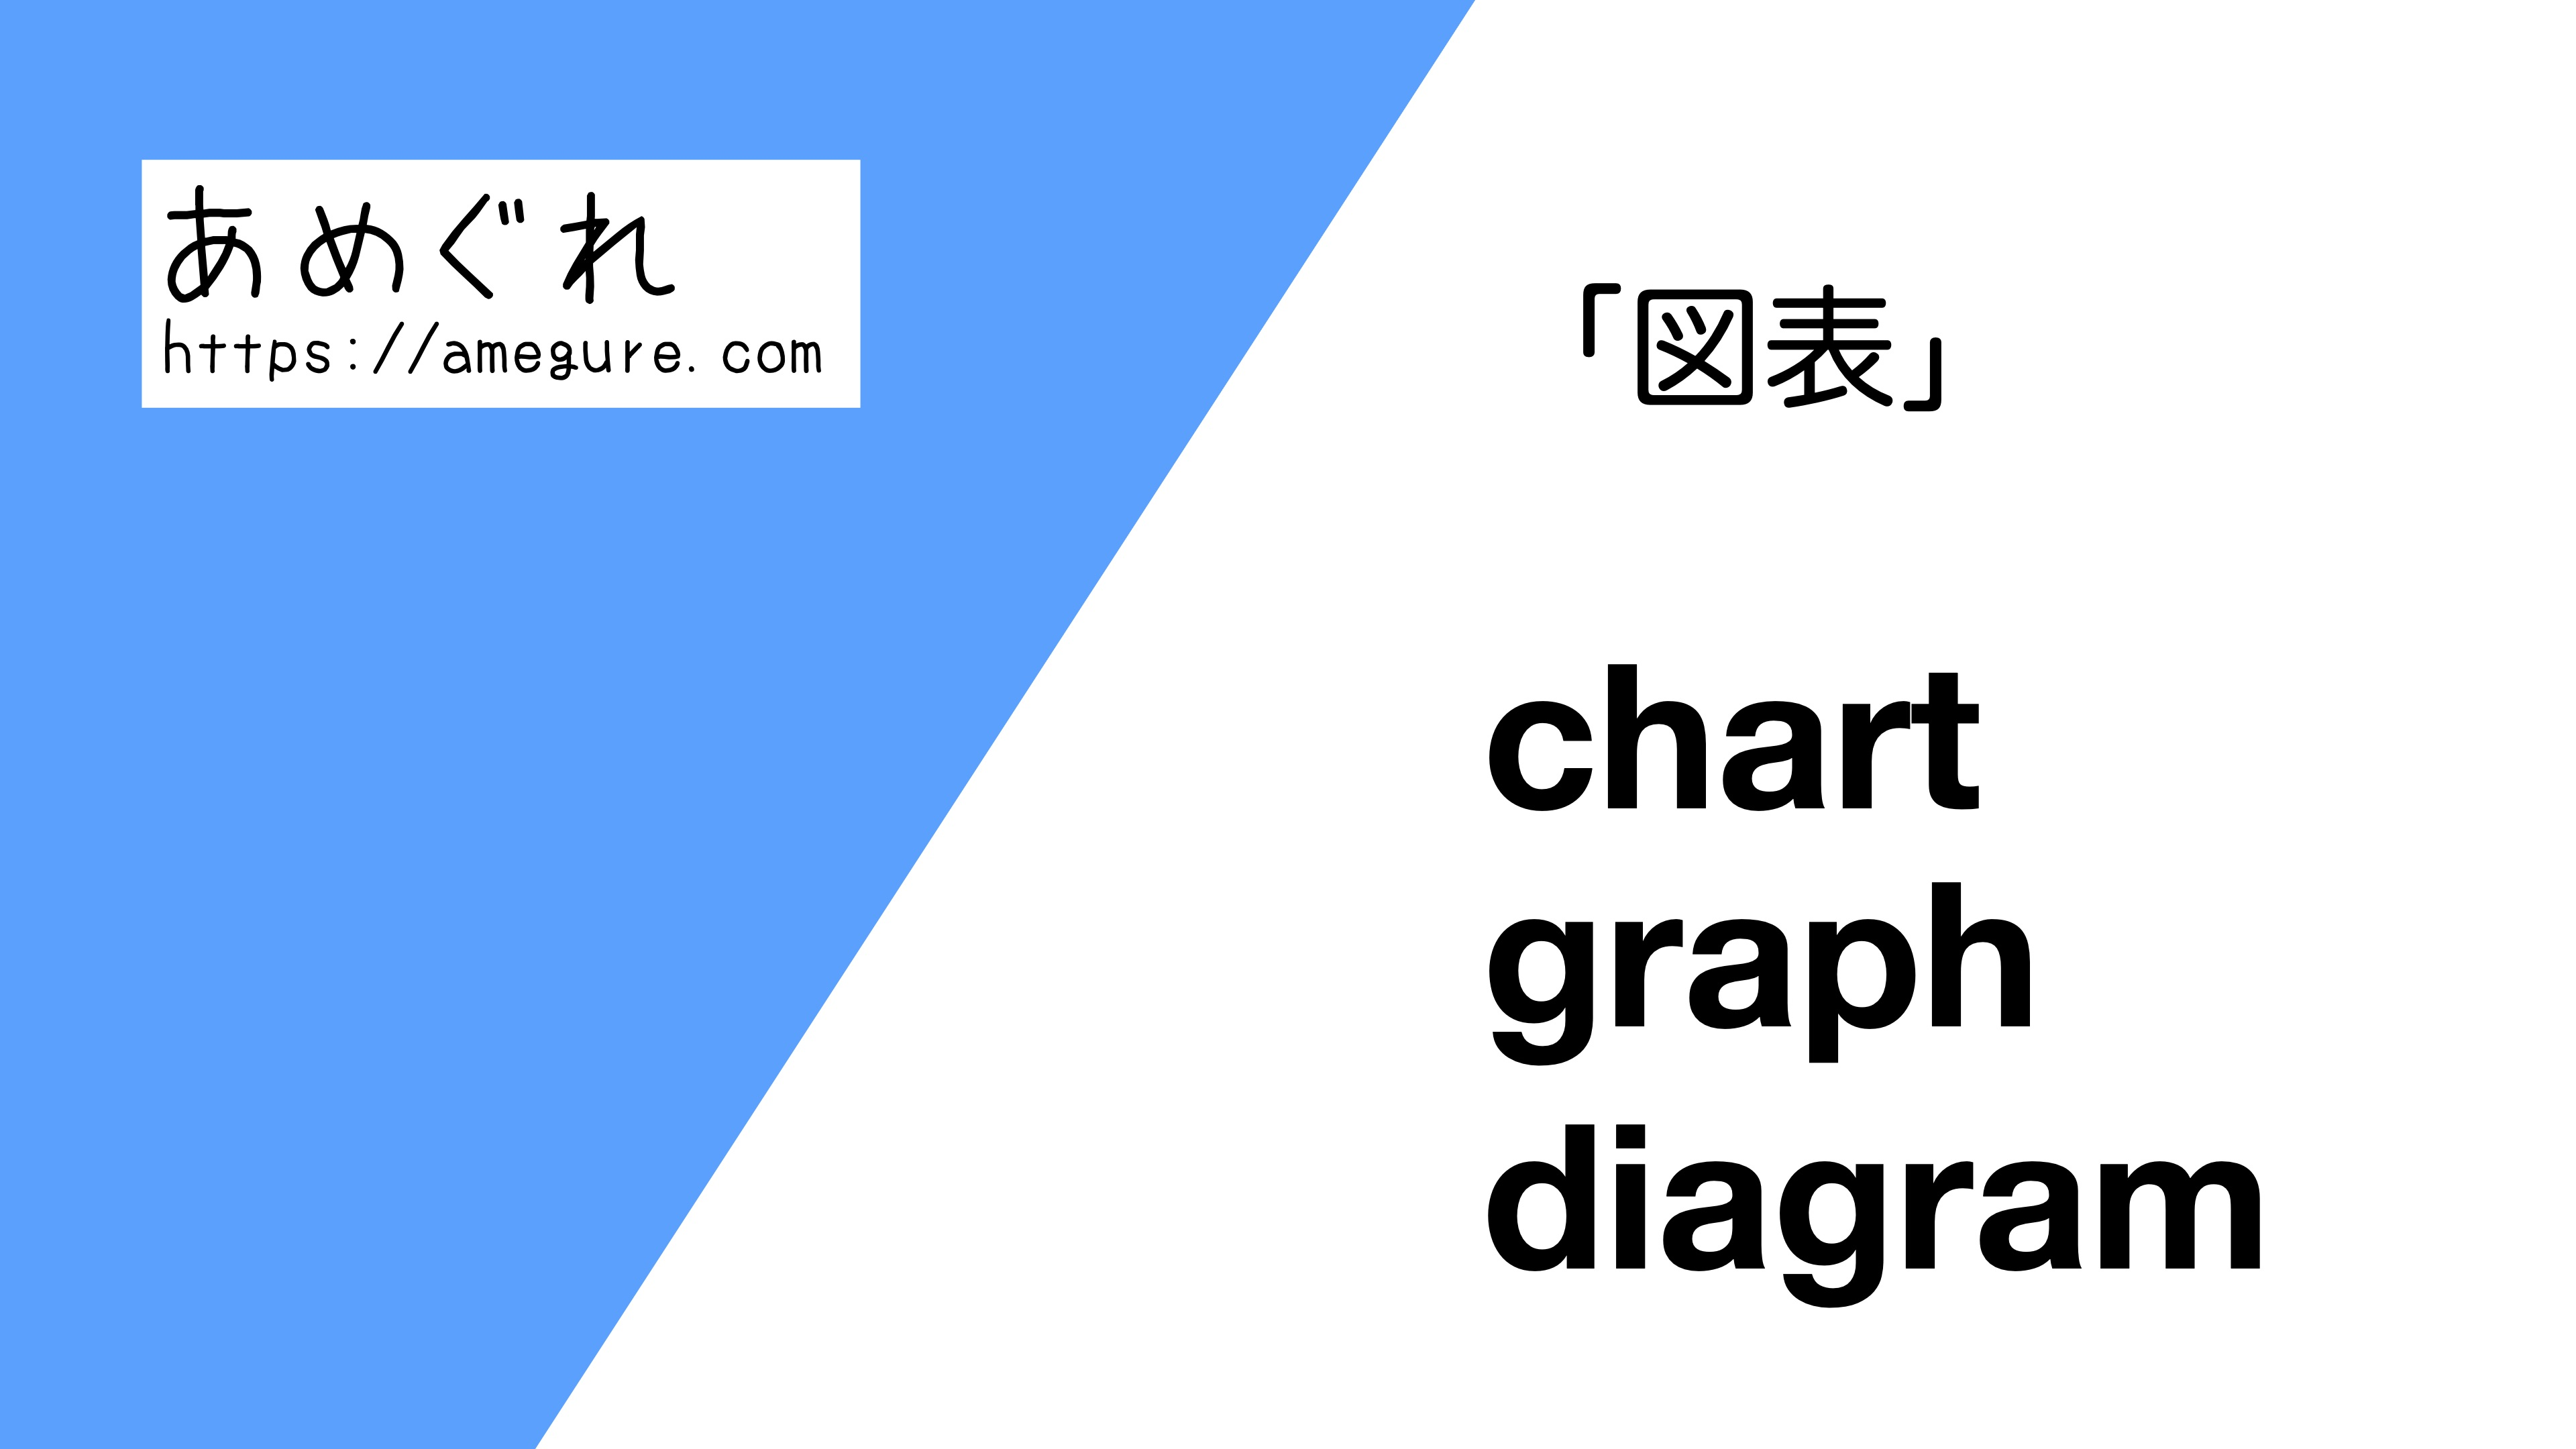 chart-graph-diagram違い